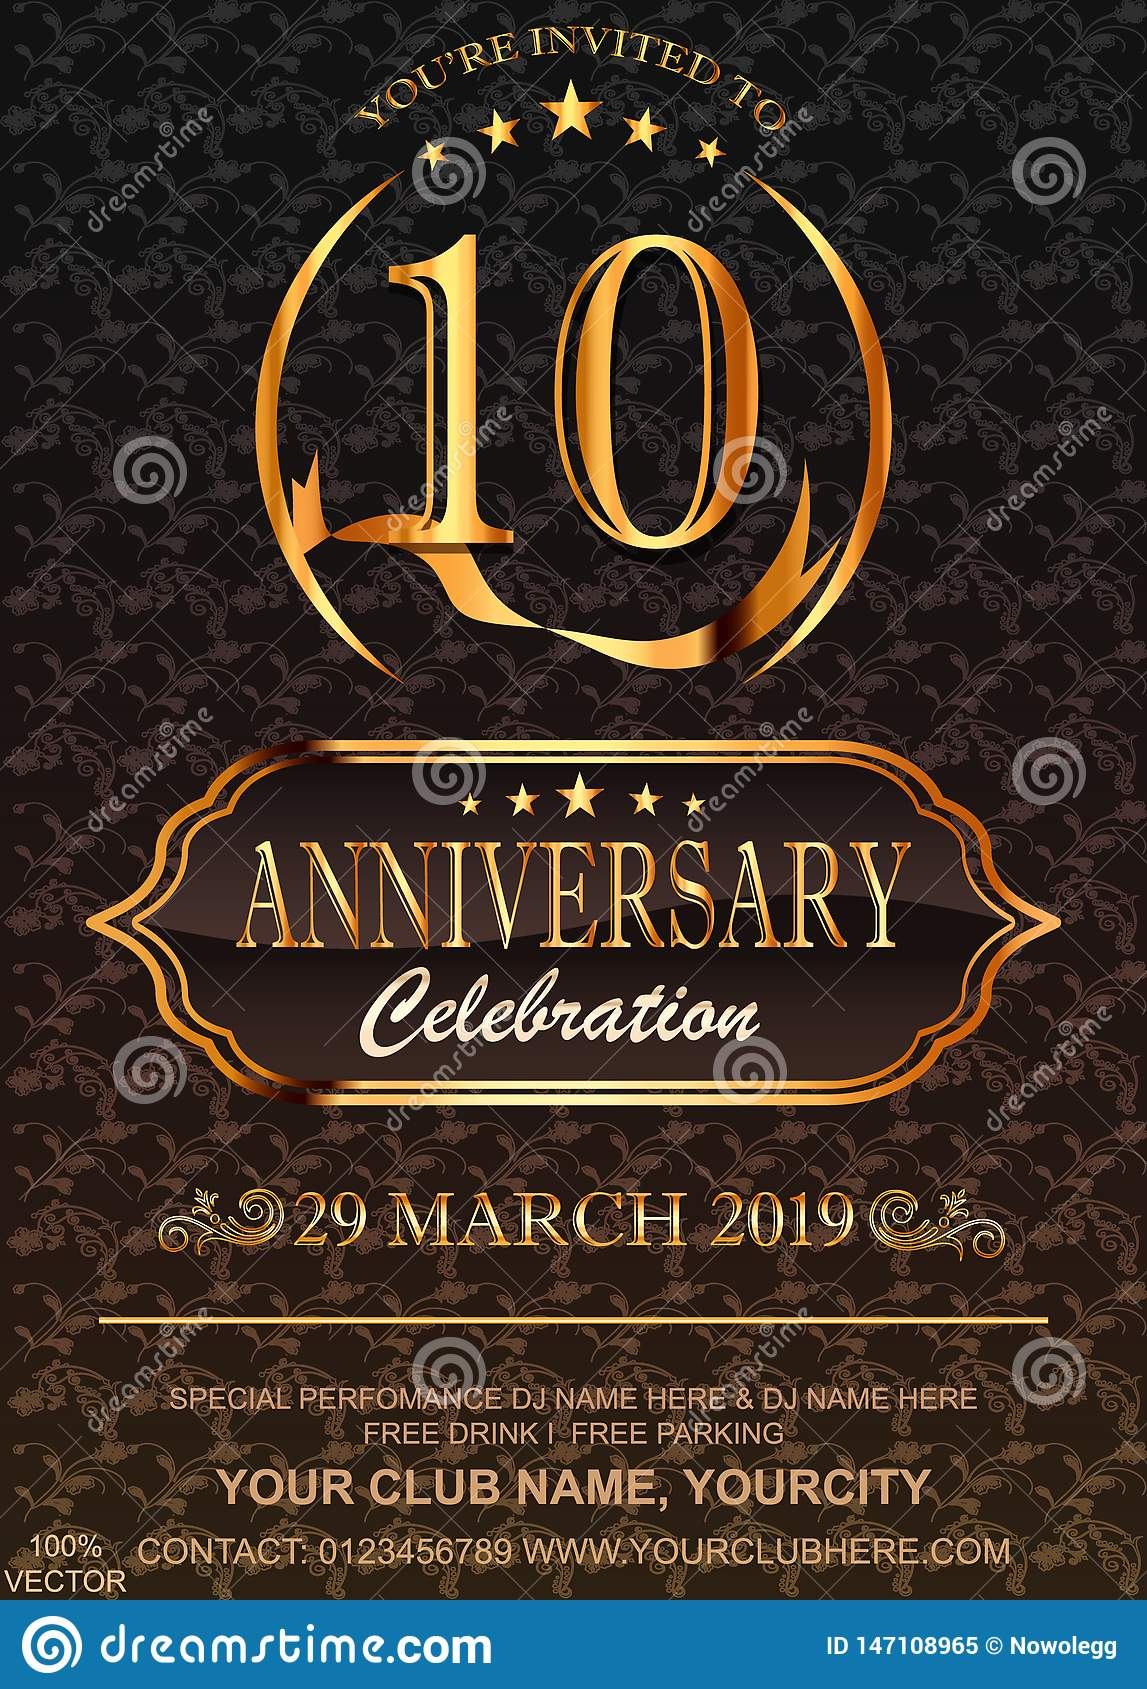 10 Anniversary gold numbers on floral pattern background. Celebration 10th anniversary event party template.